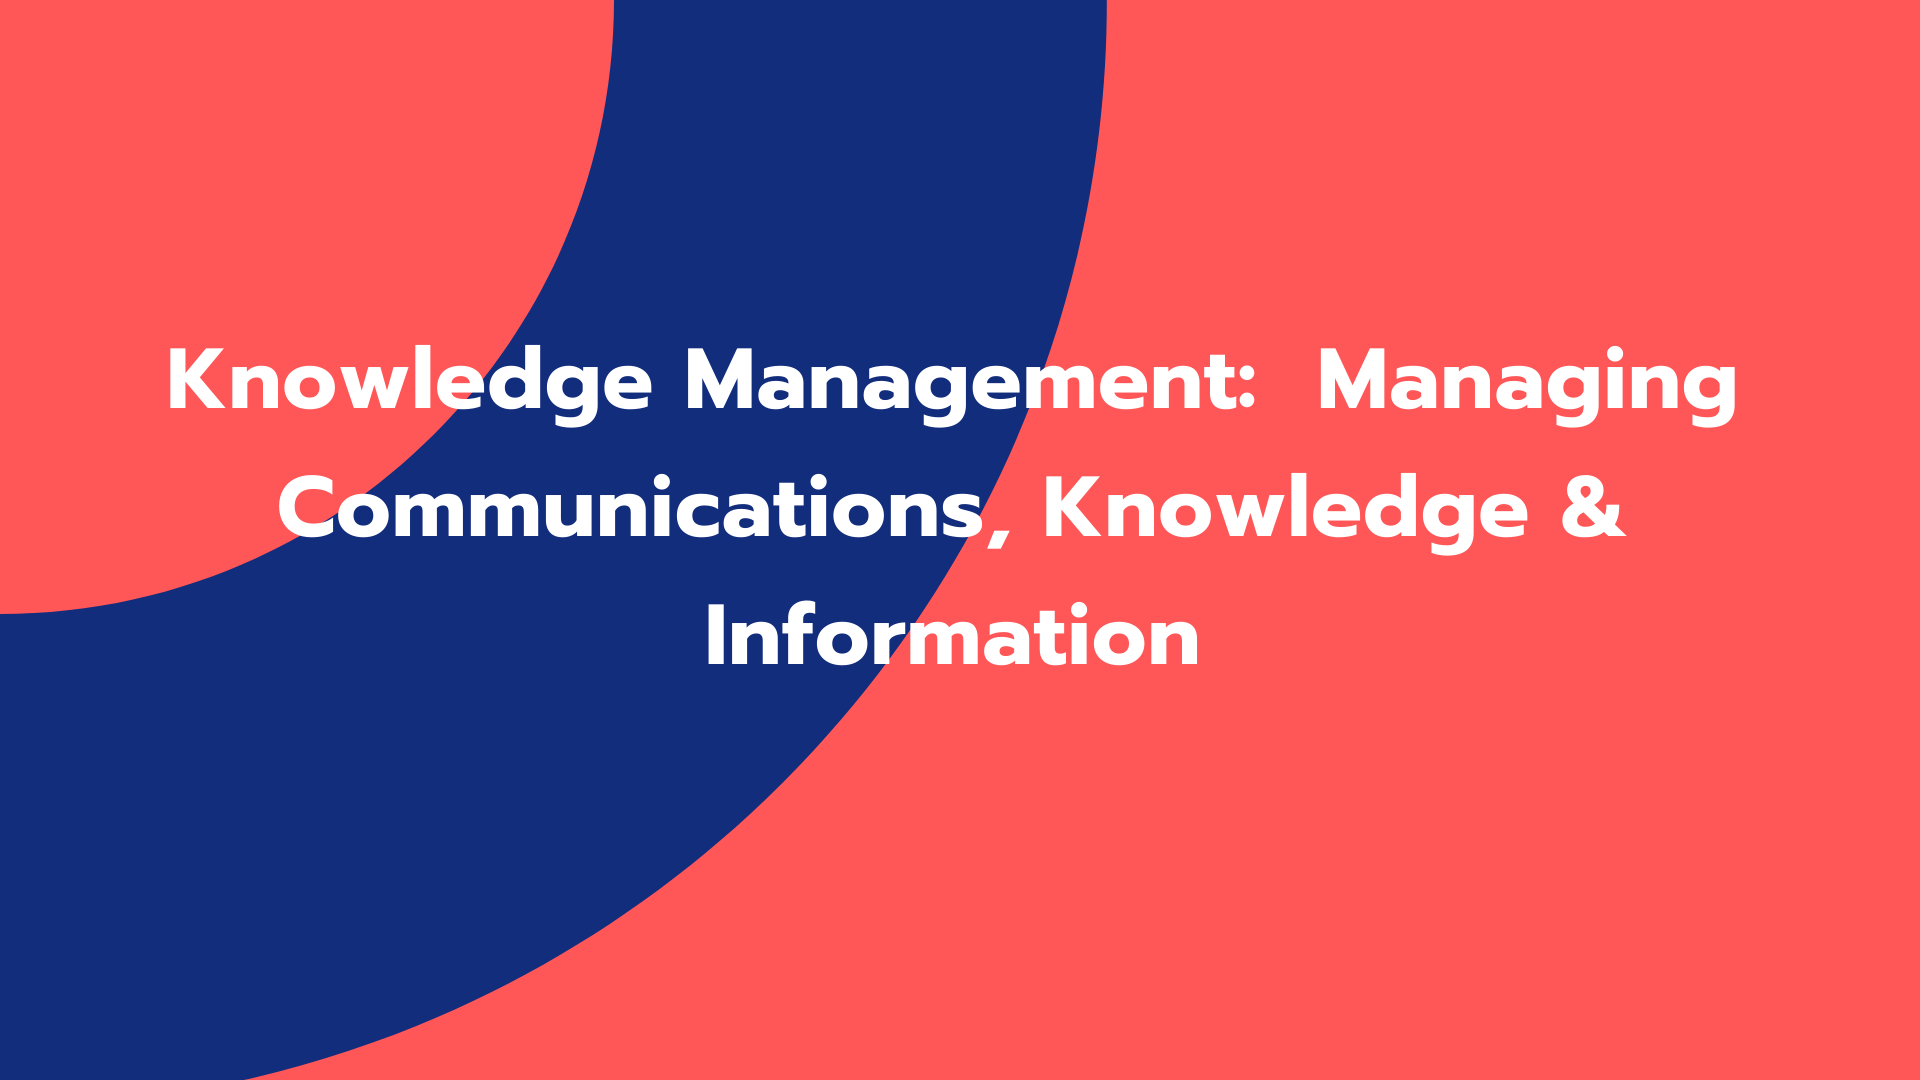 Managing Communications, Knowledge & Information